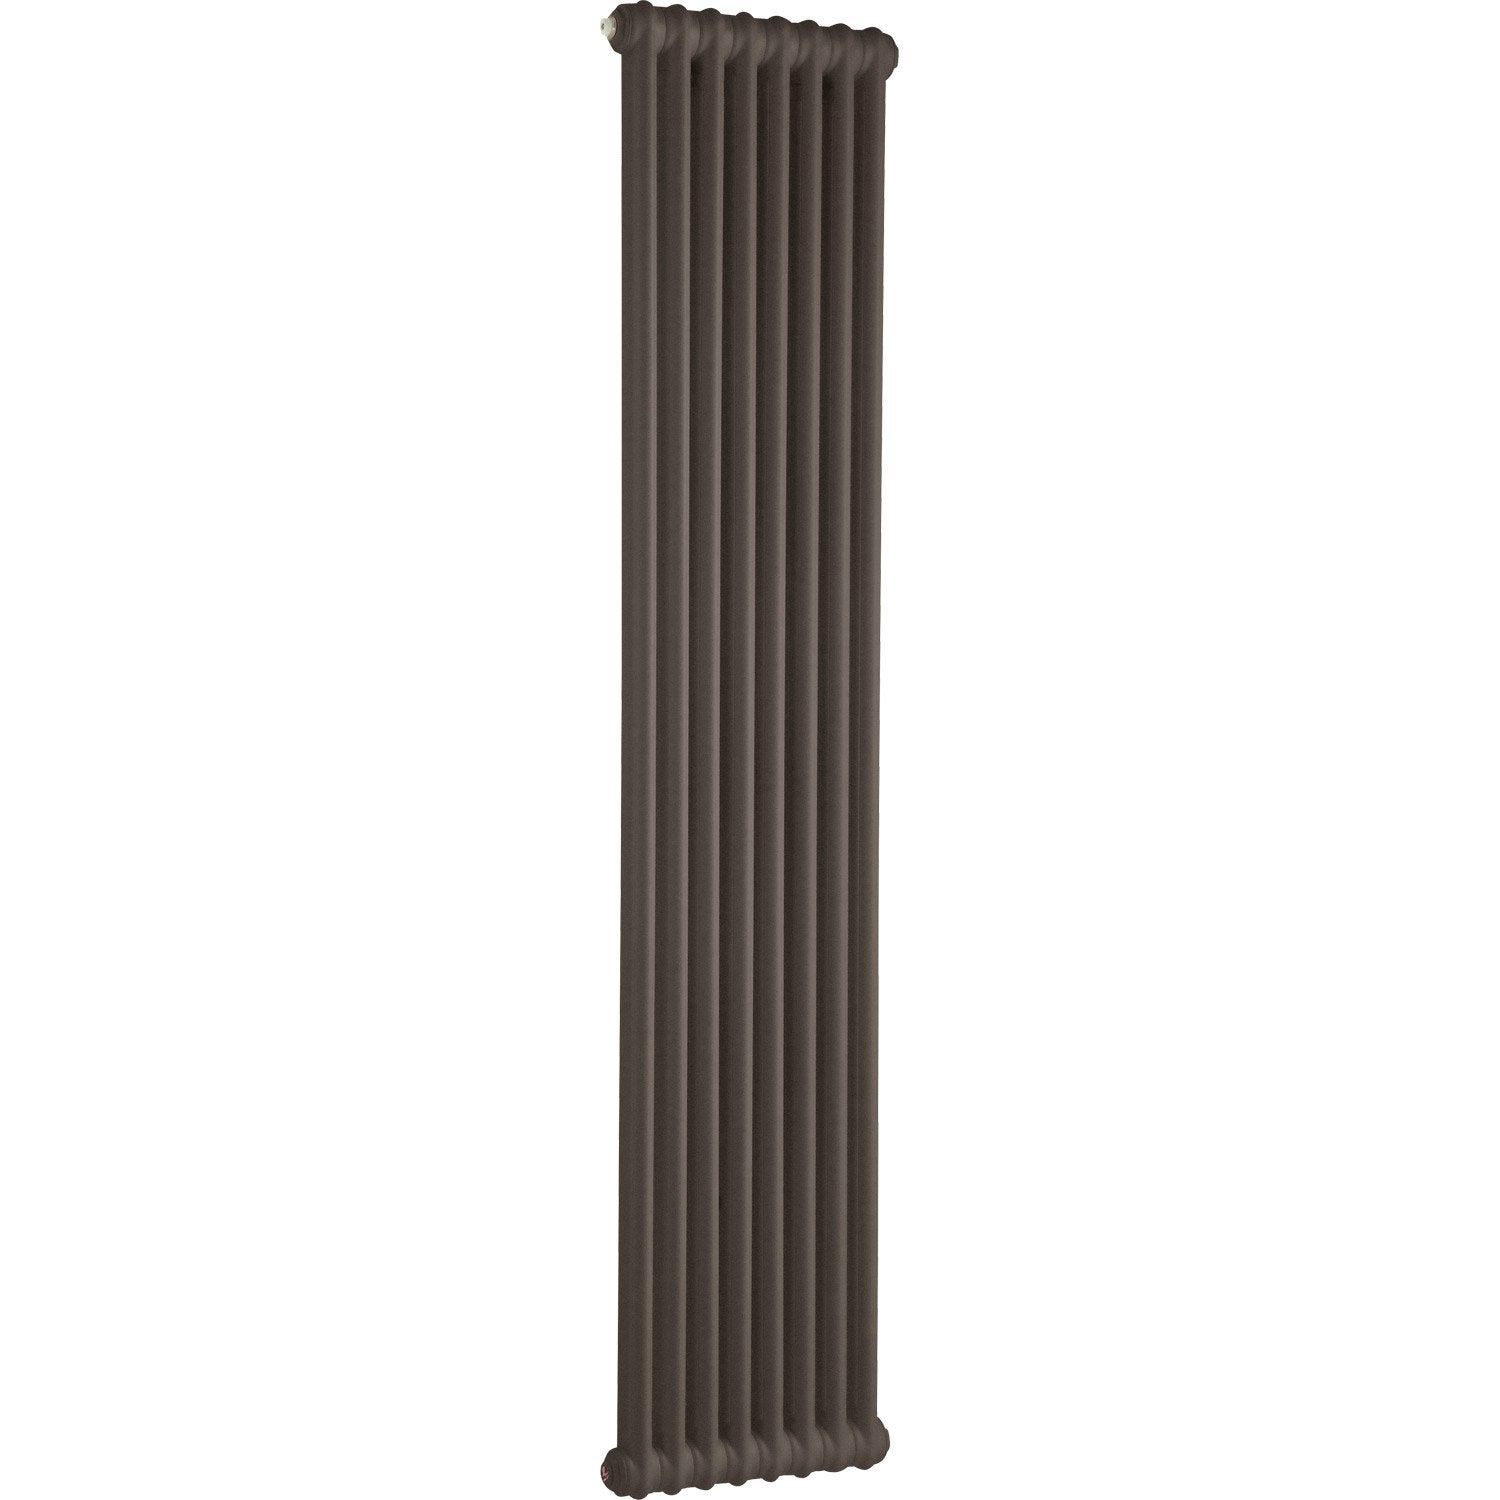 radiateur chauffage central acier tesi 2 tabac 994w leroy merlin. Black Bedroom Furniture Sets. Home Design Ideas